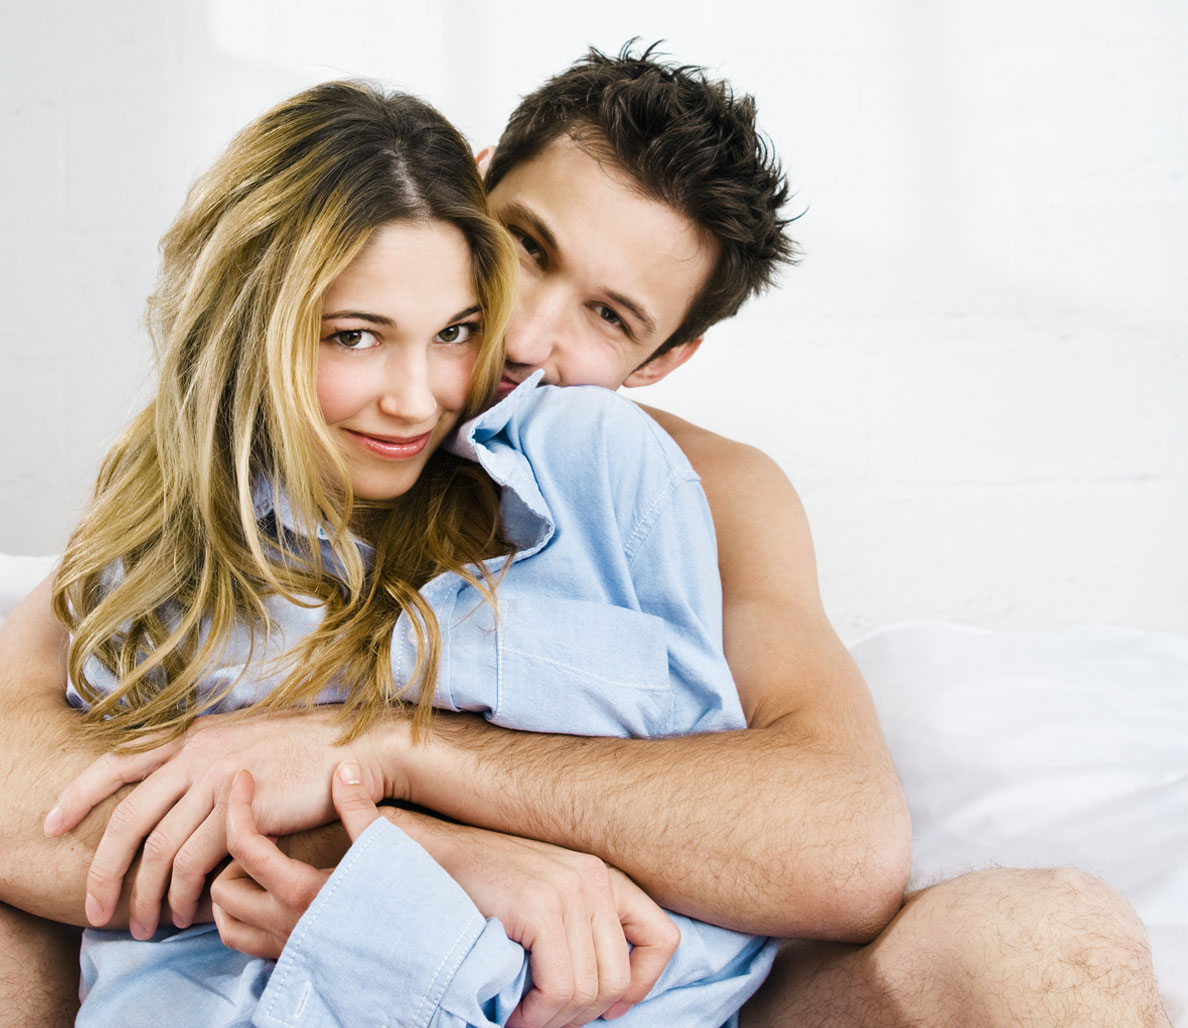 Ask Mens Fitness: How Can I Project More Sex Appeal